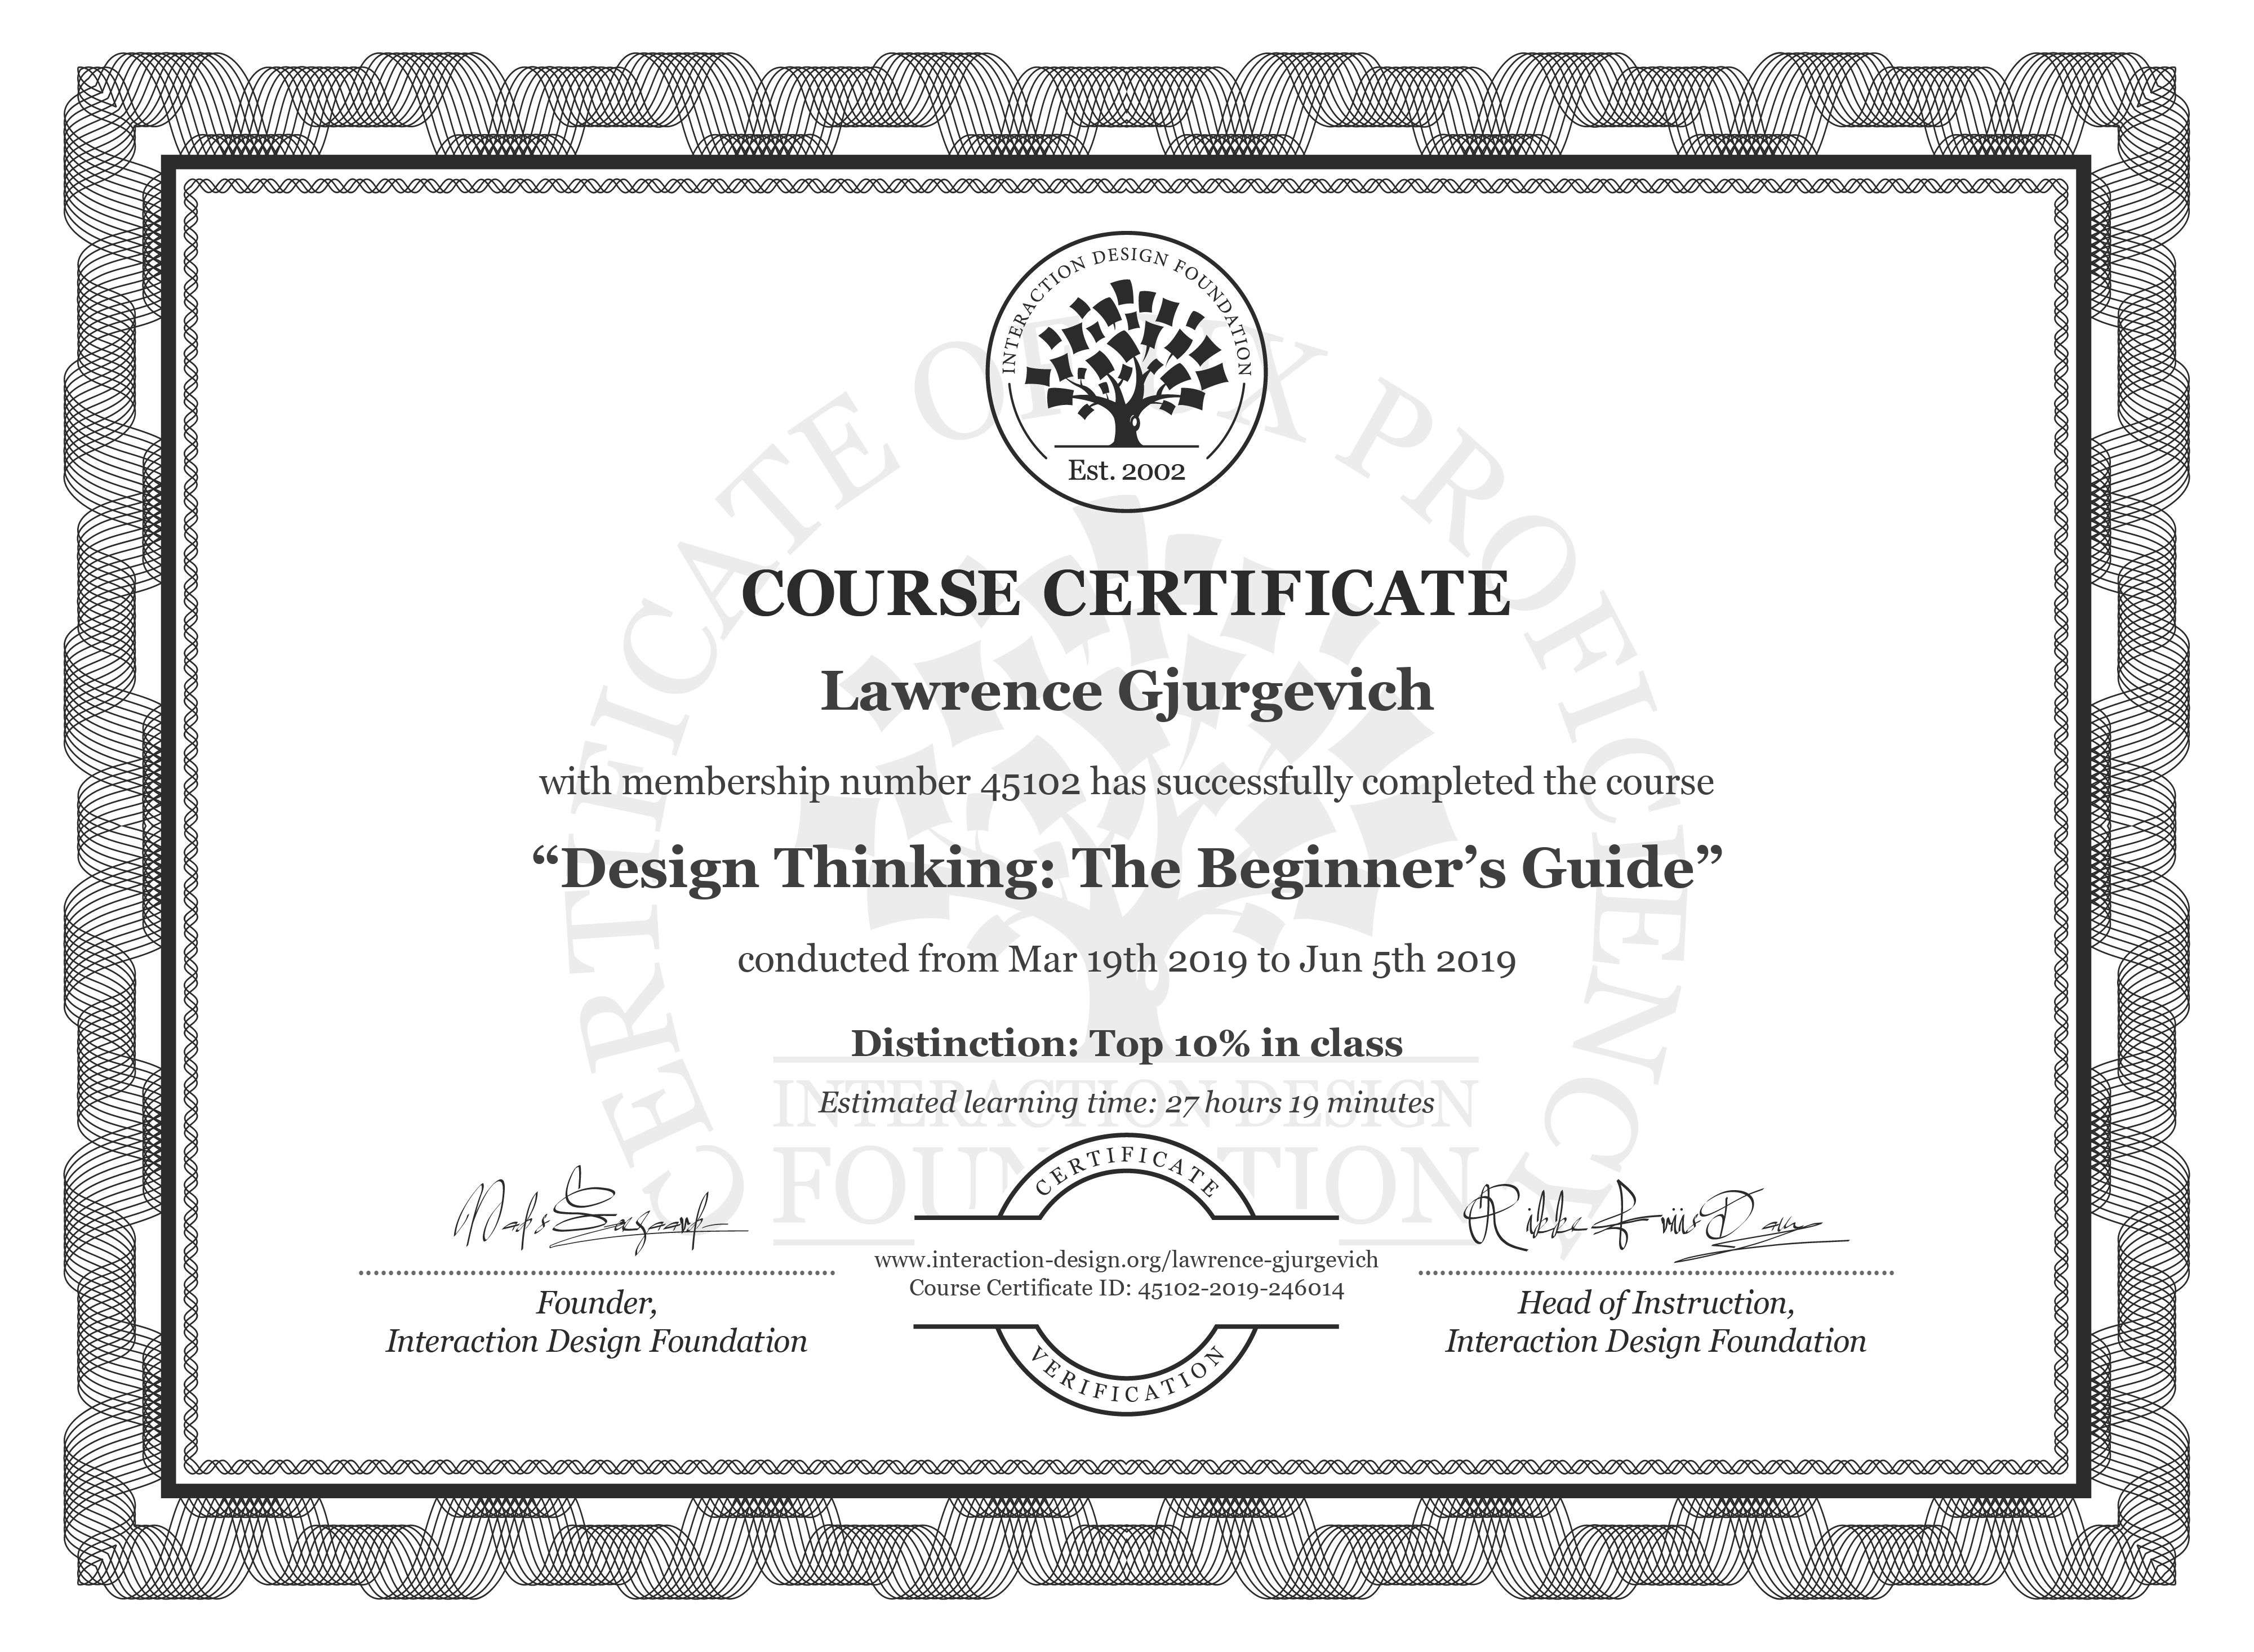 Lawrence Gjurgevich: Course Certificate - Design Thinking: The Beginner's Guide